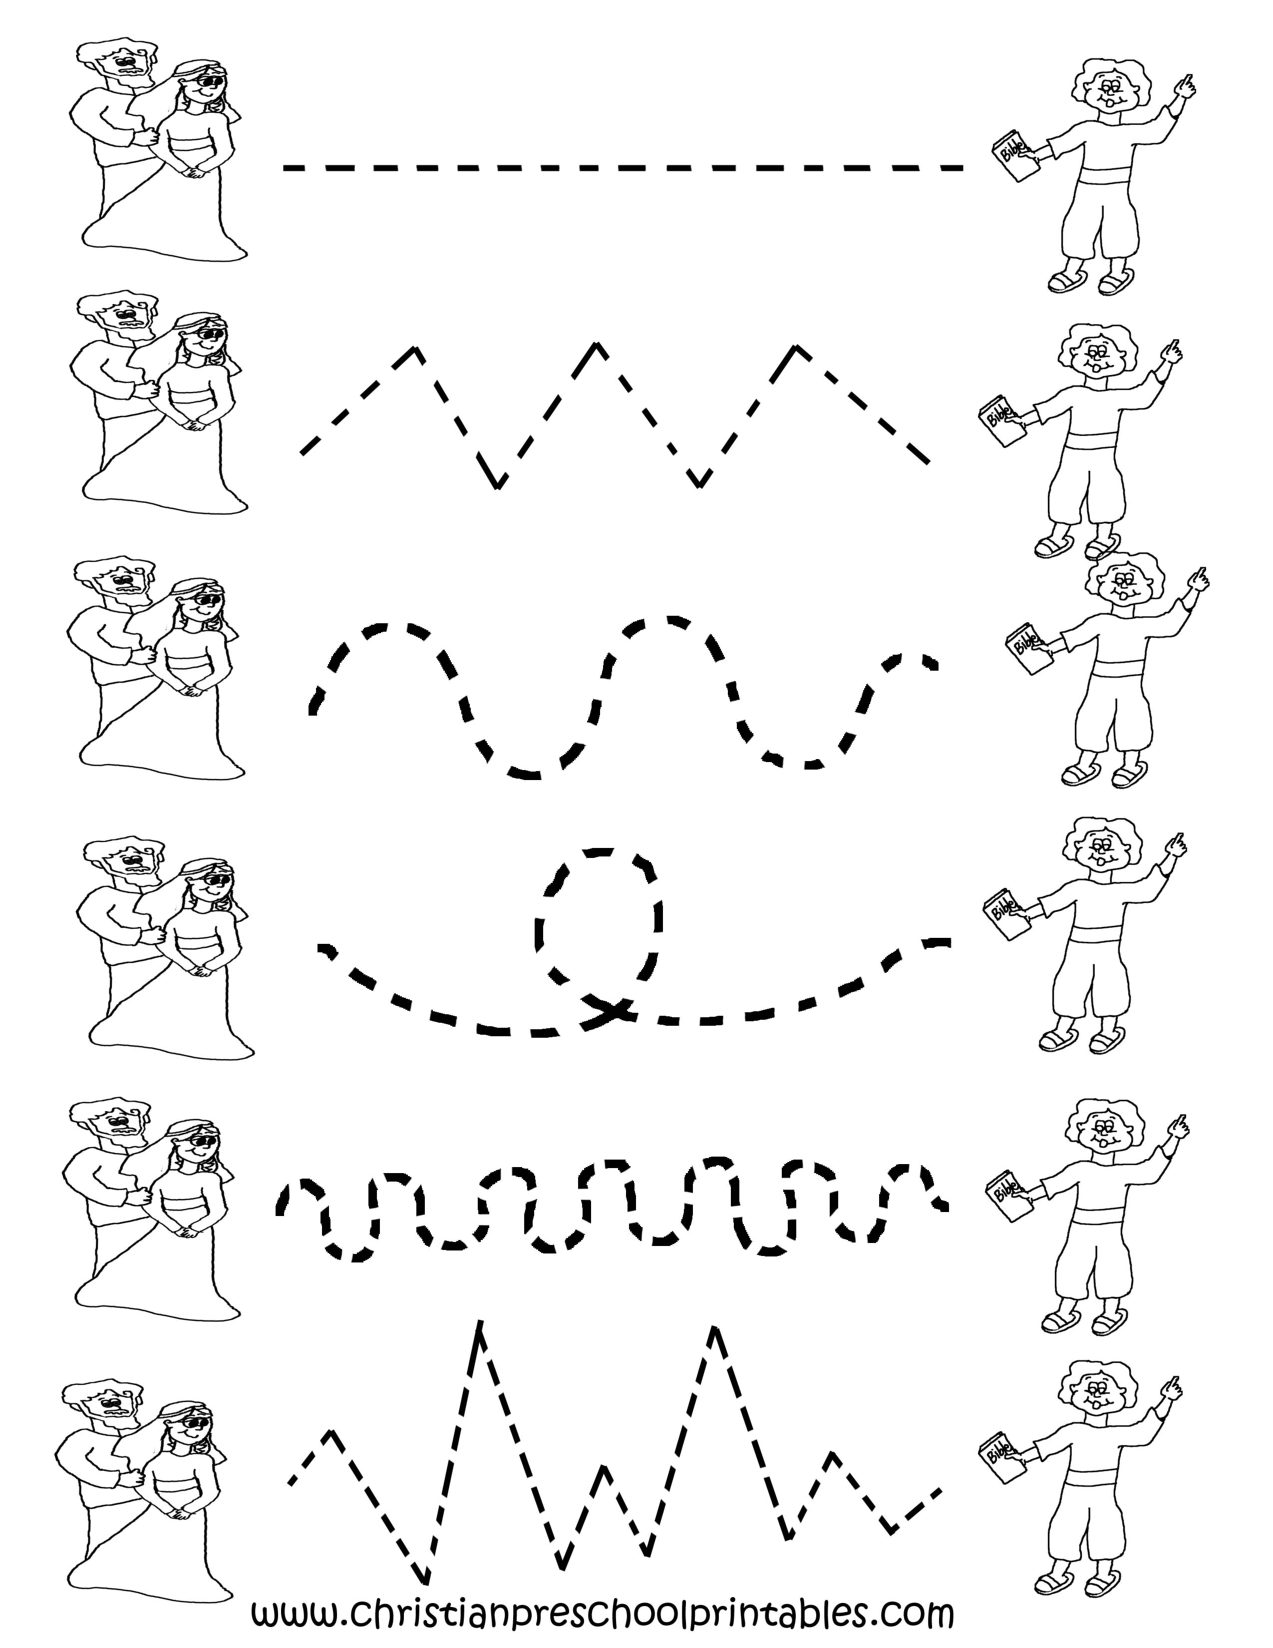 Printables Kindergarten Tracing Worksheets free kindergarten worksheets tracing letters preschool alphabet syndeomedia